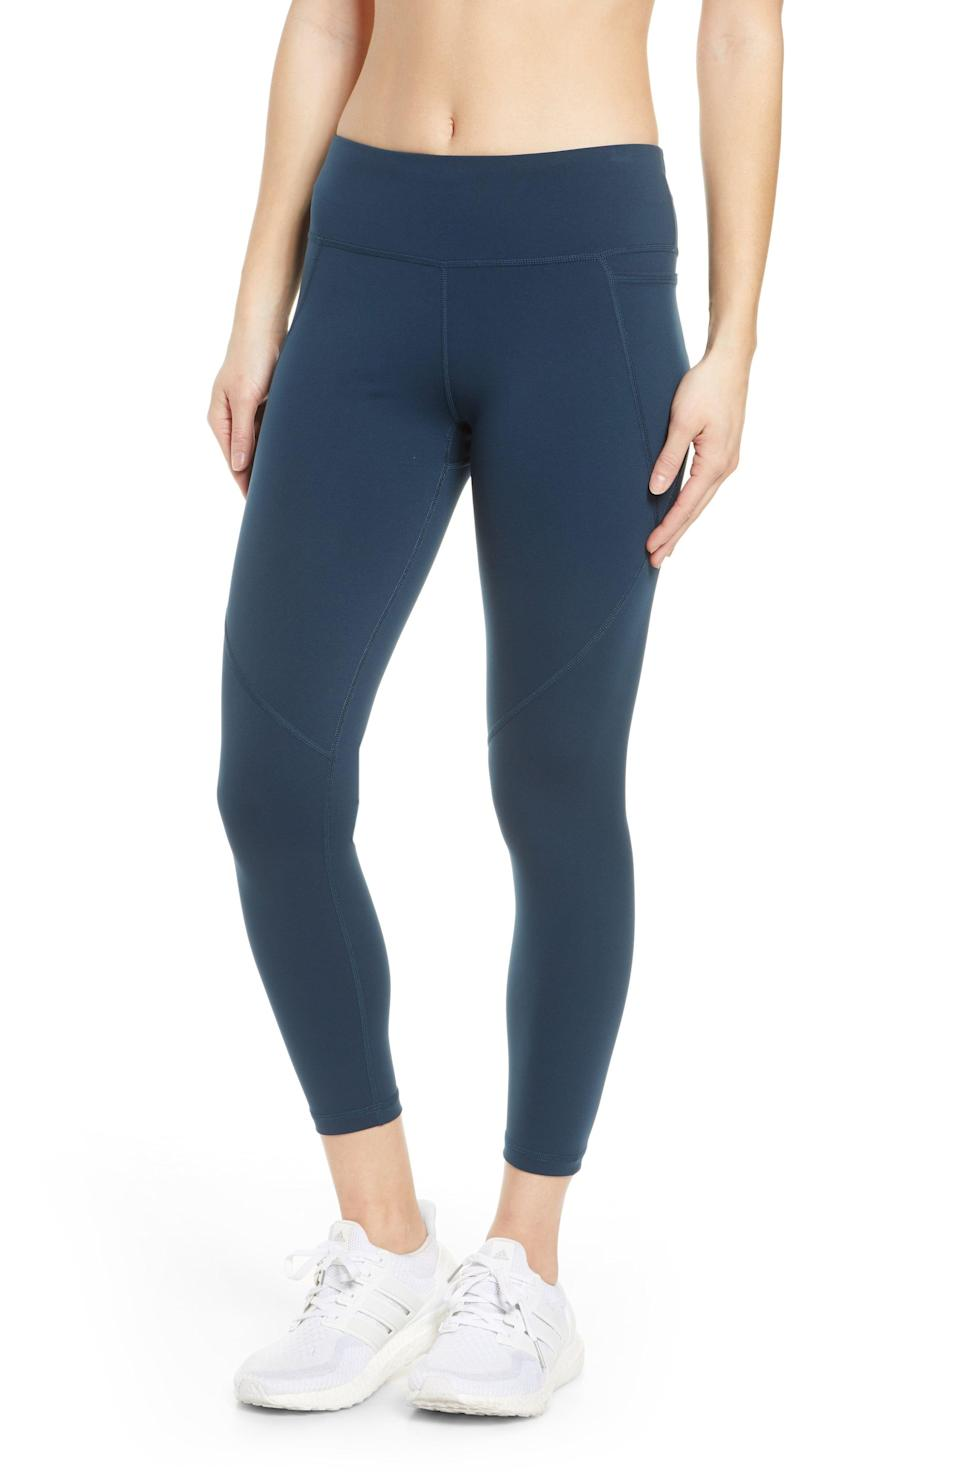 """<p><strong>SWEATY BETTY</strong></p><p>nordstrom.com</p><p><strong>$60.00</strong></p><p><a href=""""https://go.redirectingat.com?id=74968X1596630&url=https%3A%2F%2Fwww.nordstrom.com%2Fs%2Fsweaty-betty-power-sculpt-pocket-workout-7-8-leggings%2F5870801&sref=https%3A%2F%2Fwww.marieclaire.com%2Ffashion%2Fg35090742%2Fnordstrom-half-yearly-sale-2020%2F"""" rel=""""nofollow noopener"""" target=""""_blank"""" data-ylk=""""slk:Shop Now"""" class=""""link rapid-noclick-resp"""">Shop Now</a></p>"""